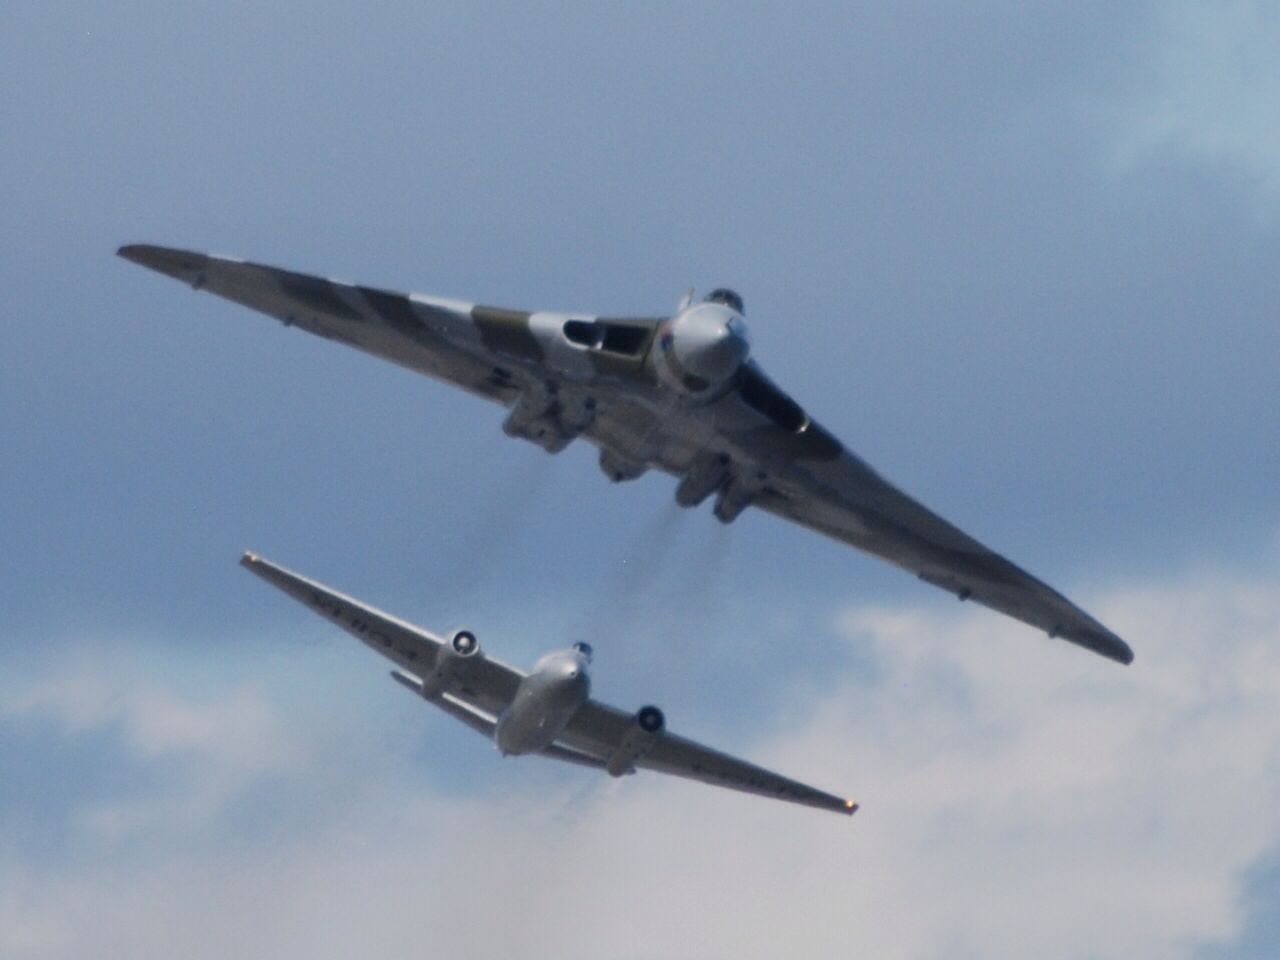 Avro Vulcan Bomber Xh558 At Newcastle With British Electric